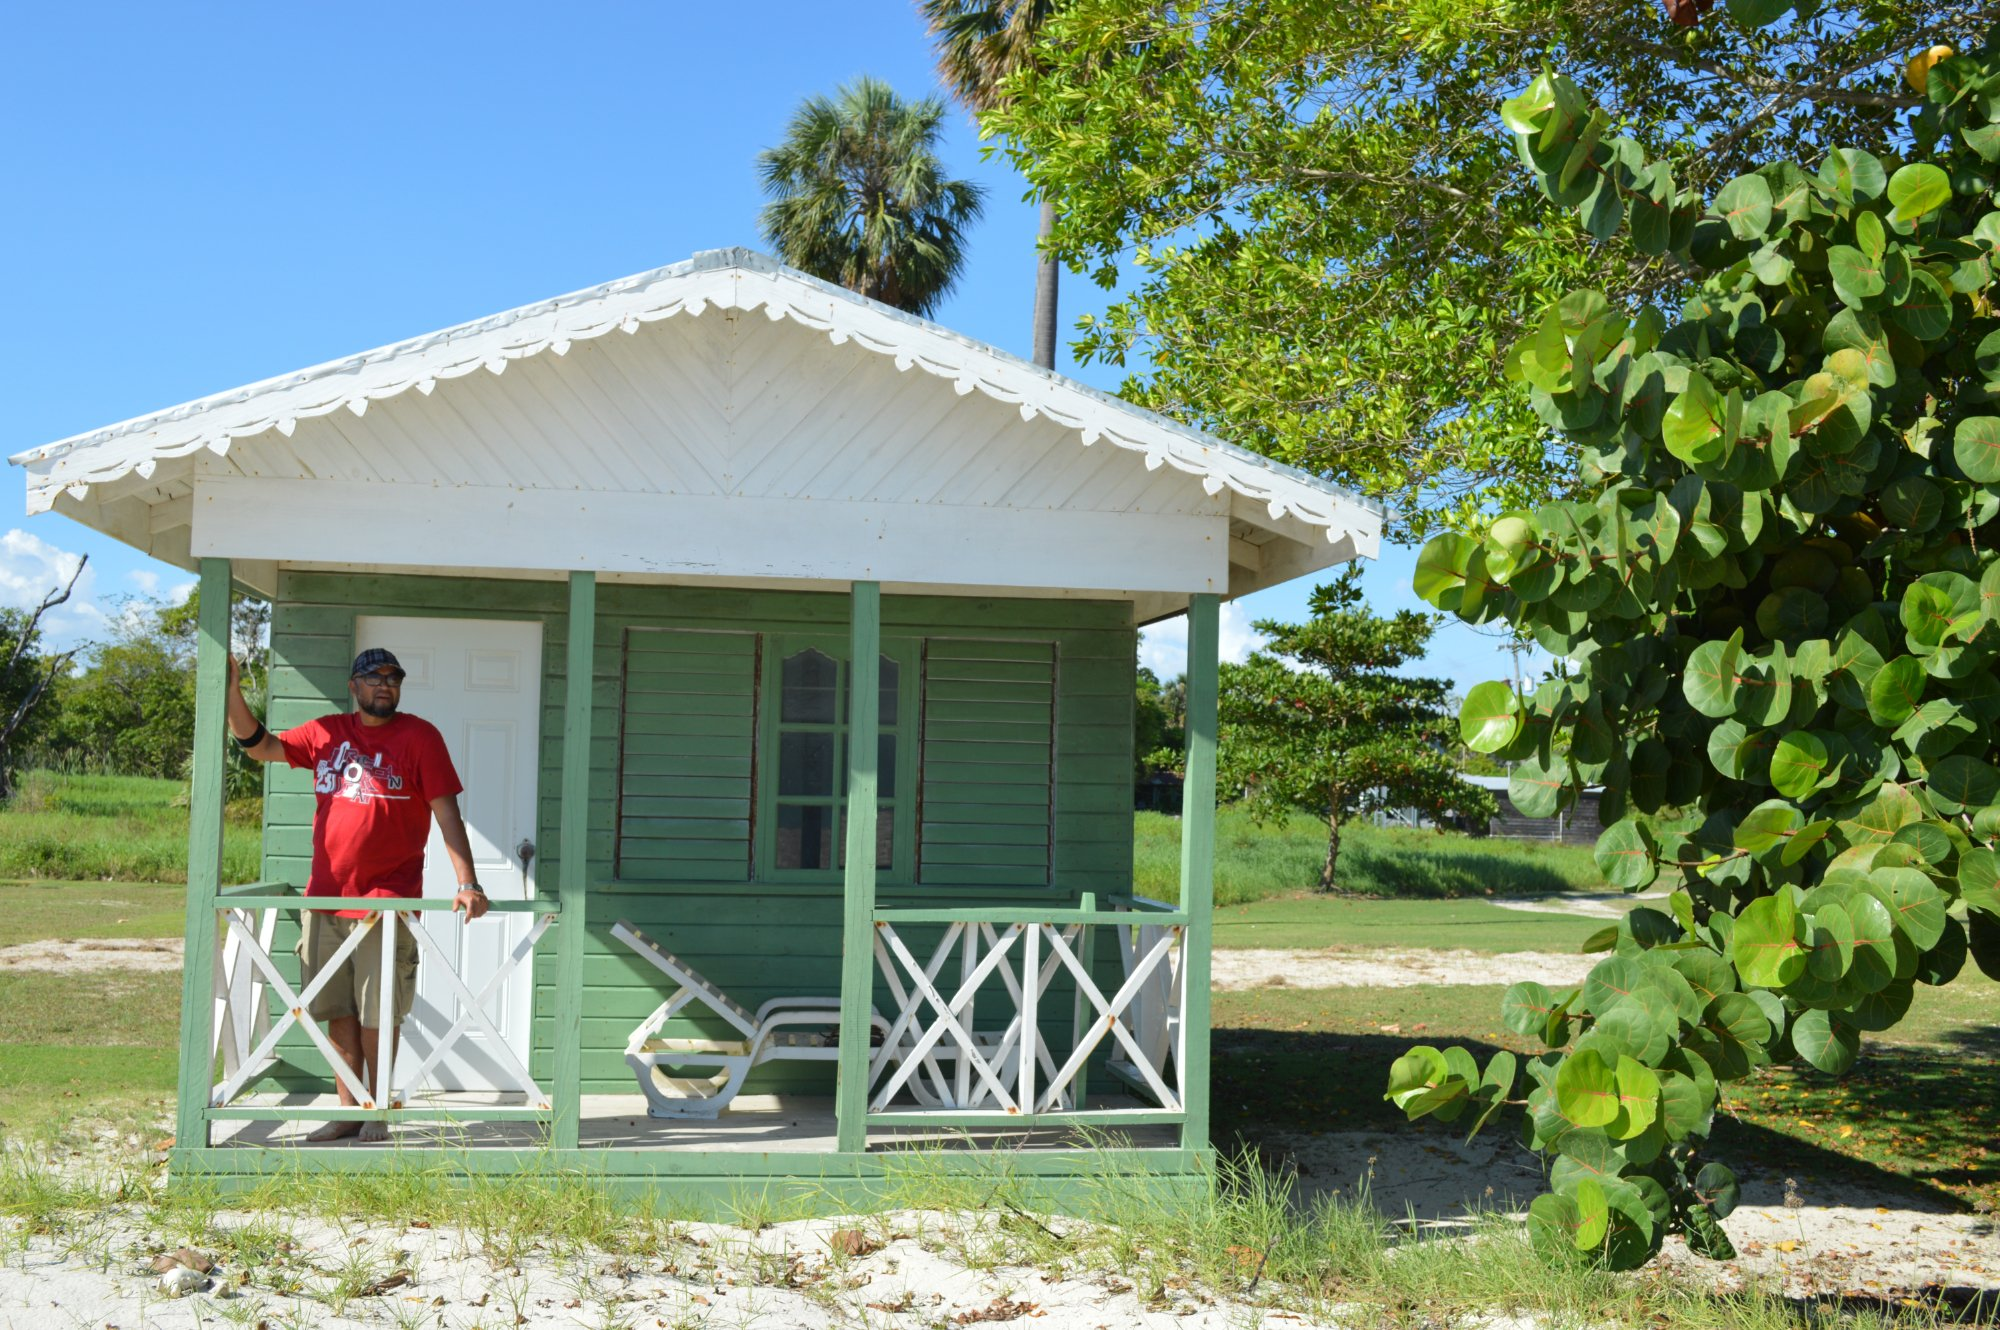 Cottage on the beach - Community Tourism